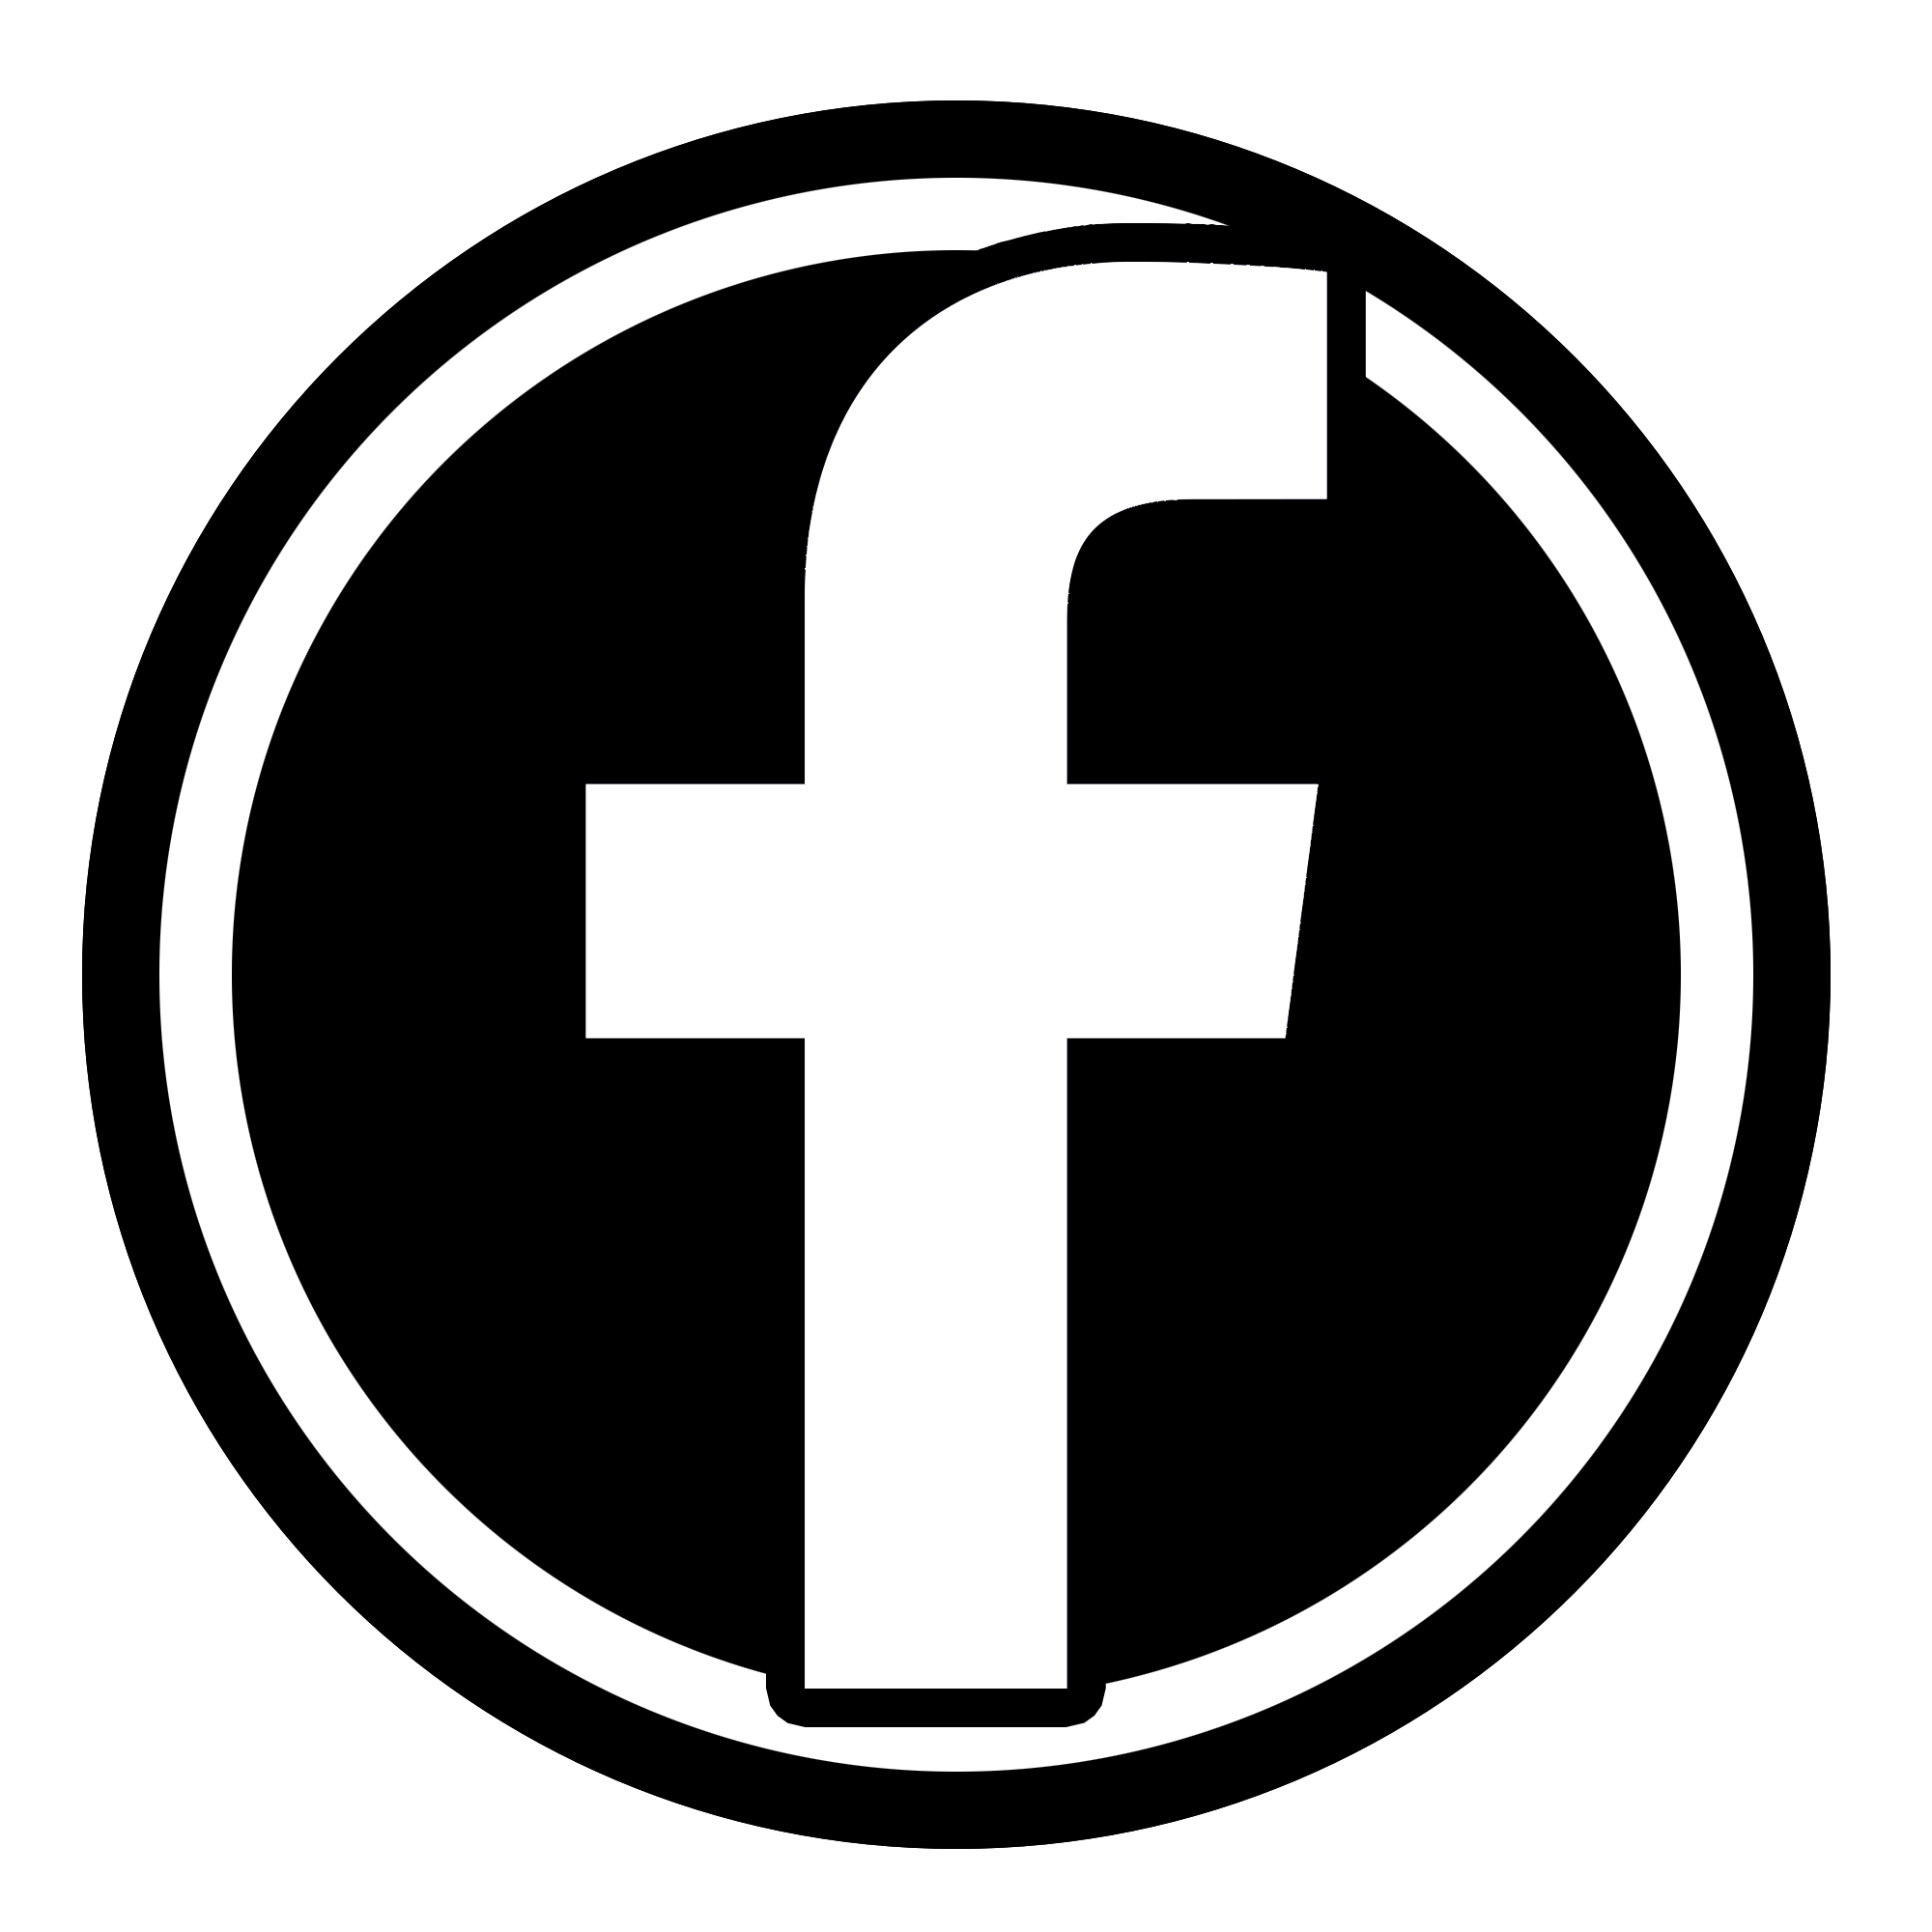 Facebook Icon 2014 File b amp w facebook icon pngFacebook F Icon